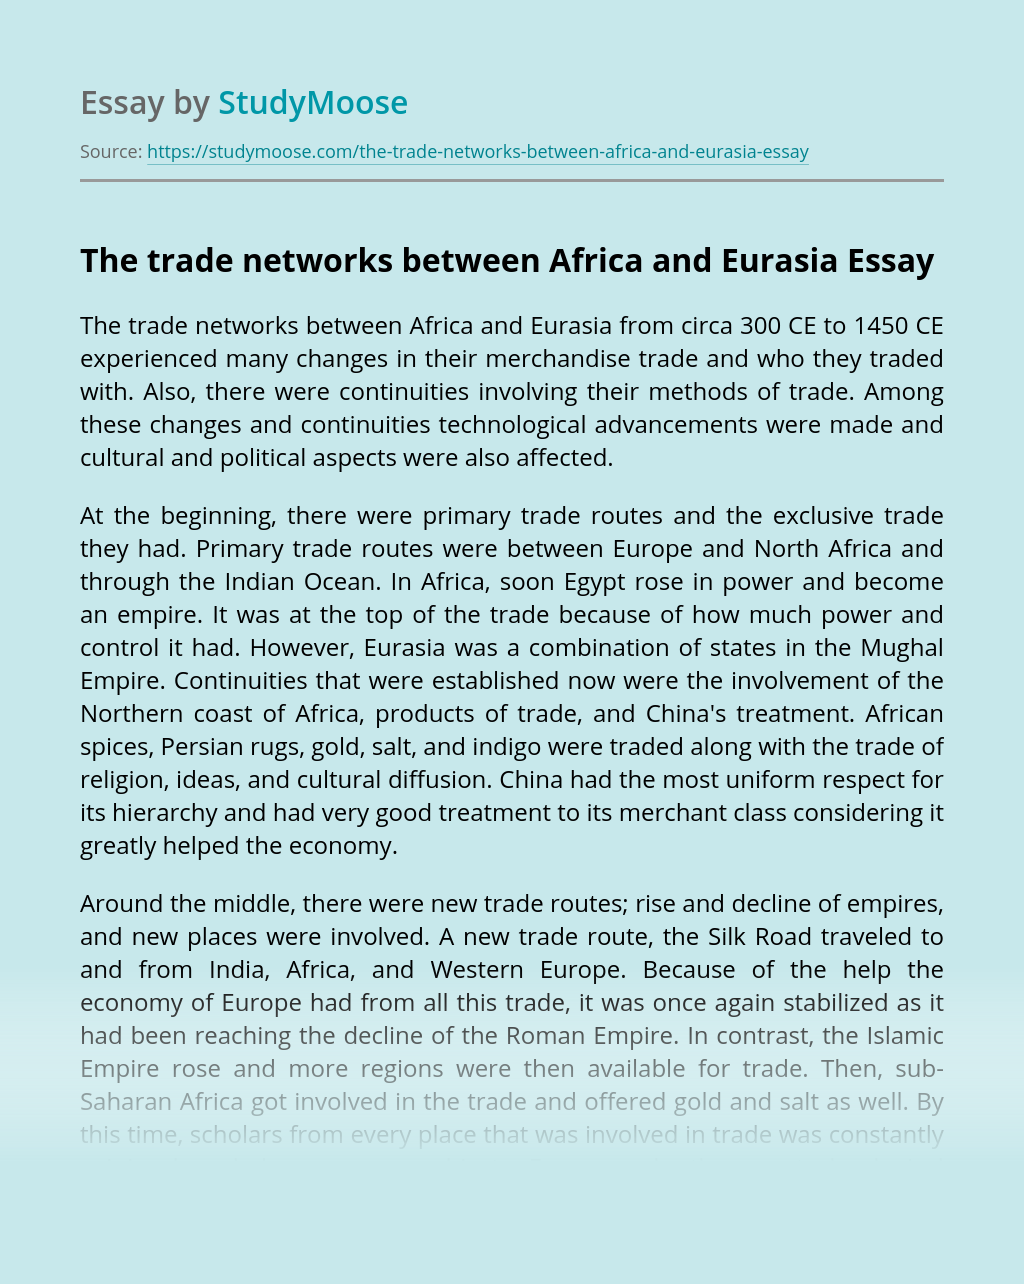 The trade networks between Africa and Eurasia from 300 CE to 1450 CE